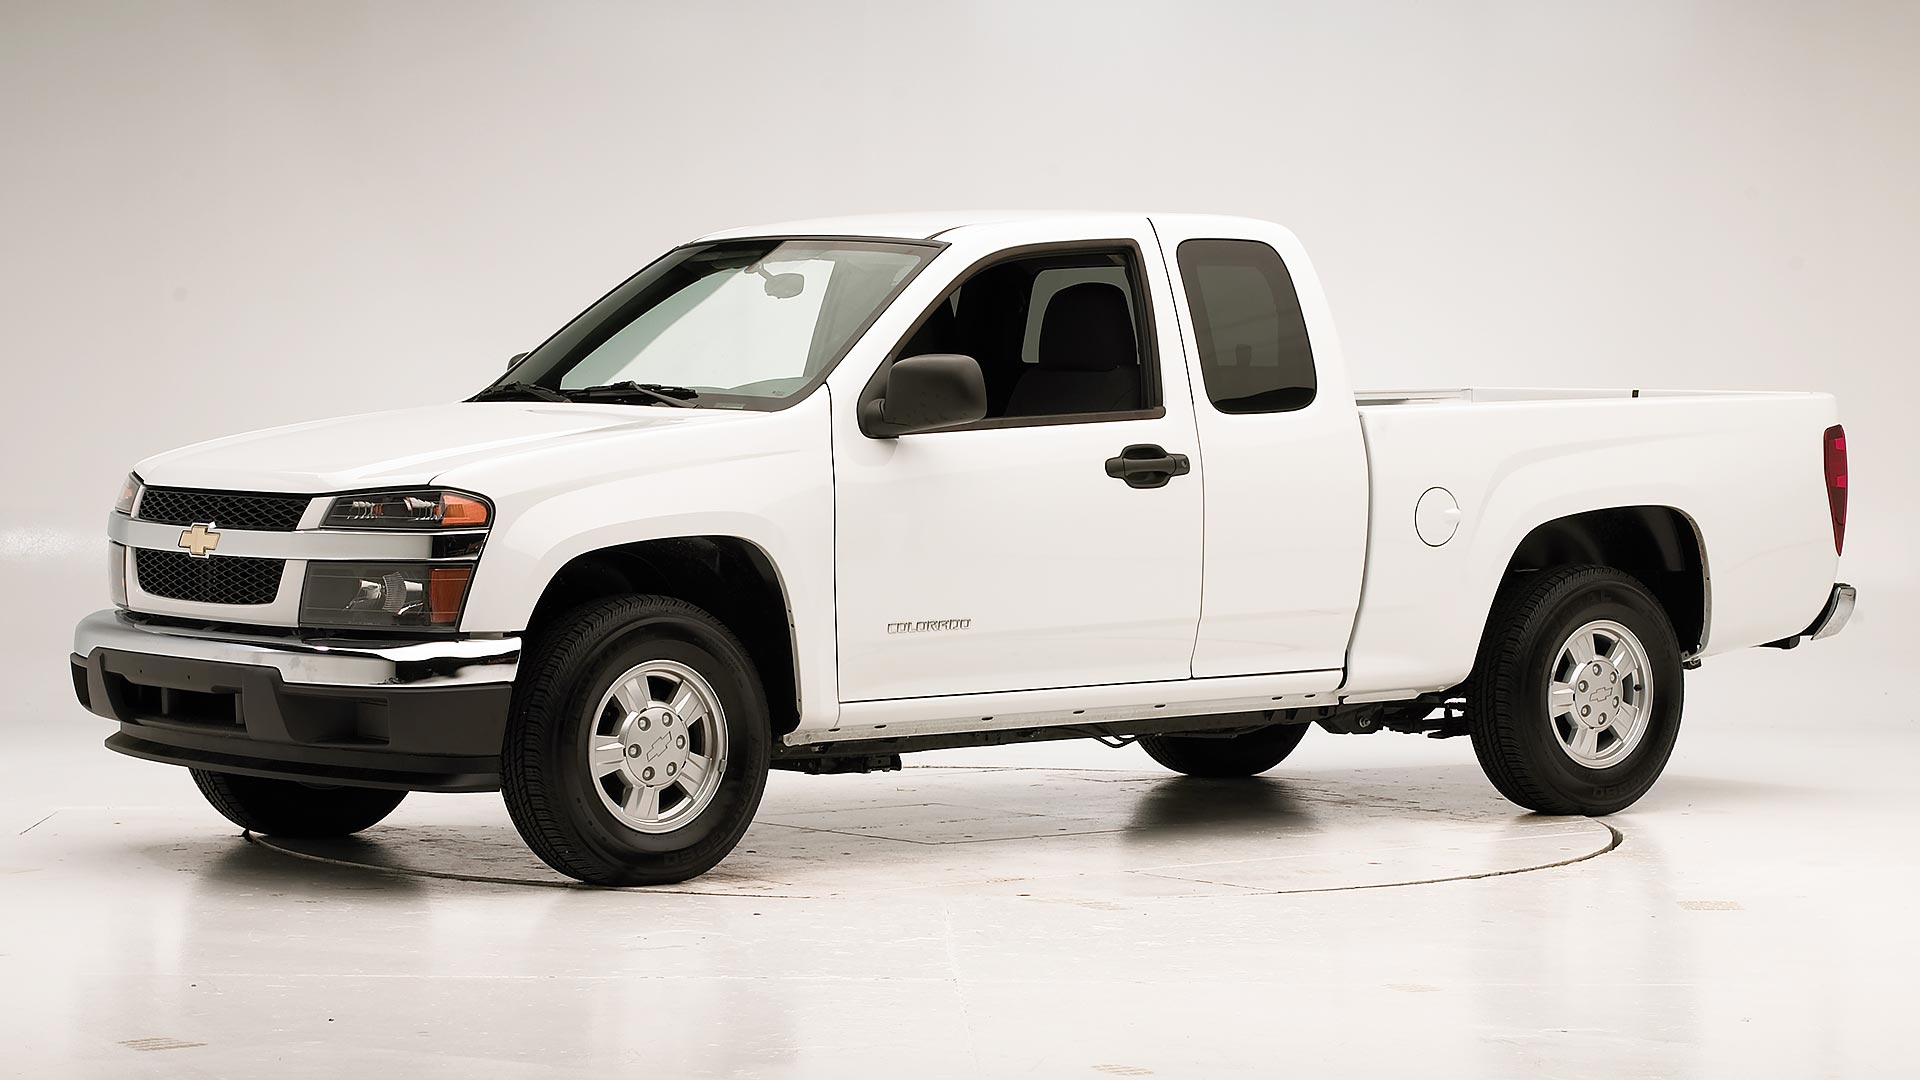 2007 Chevrolet Colorado Extended cab pickup